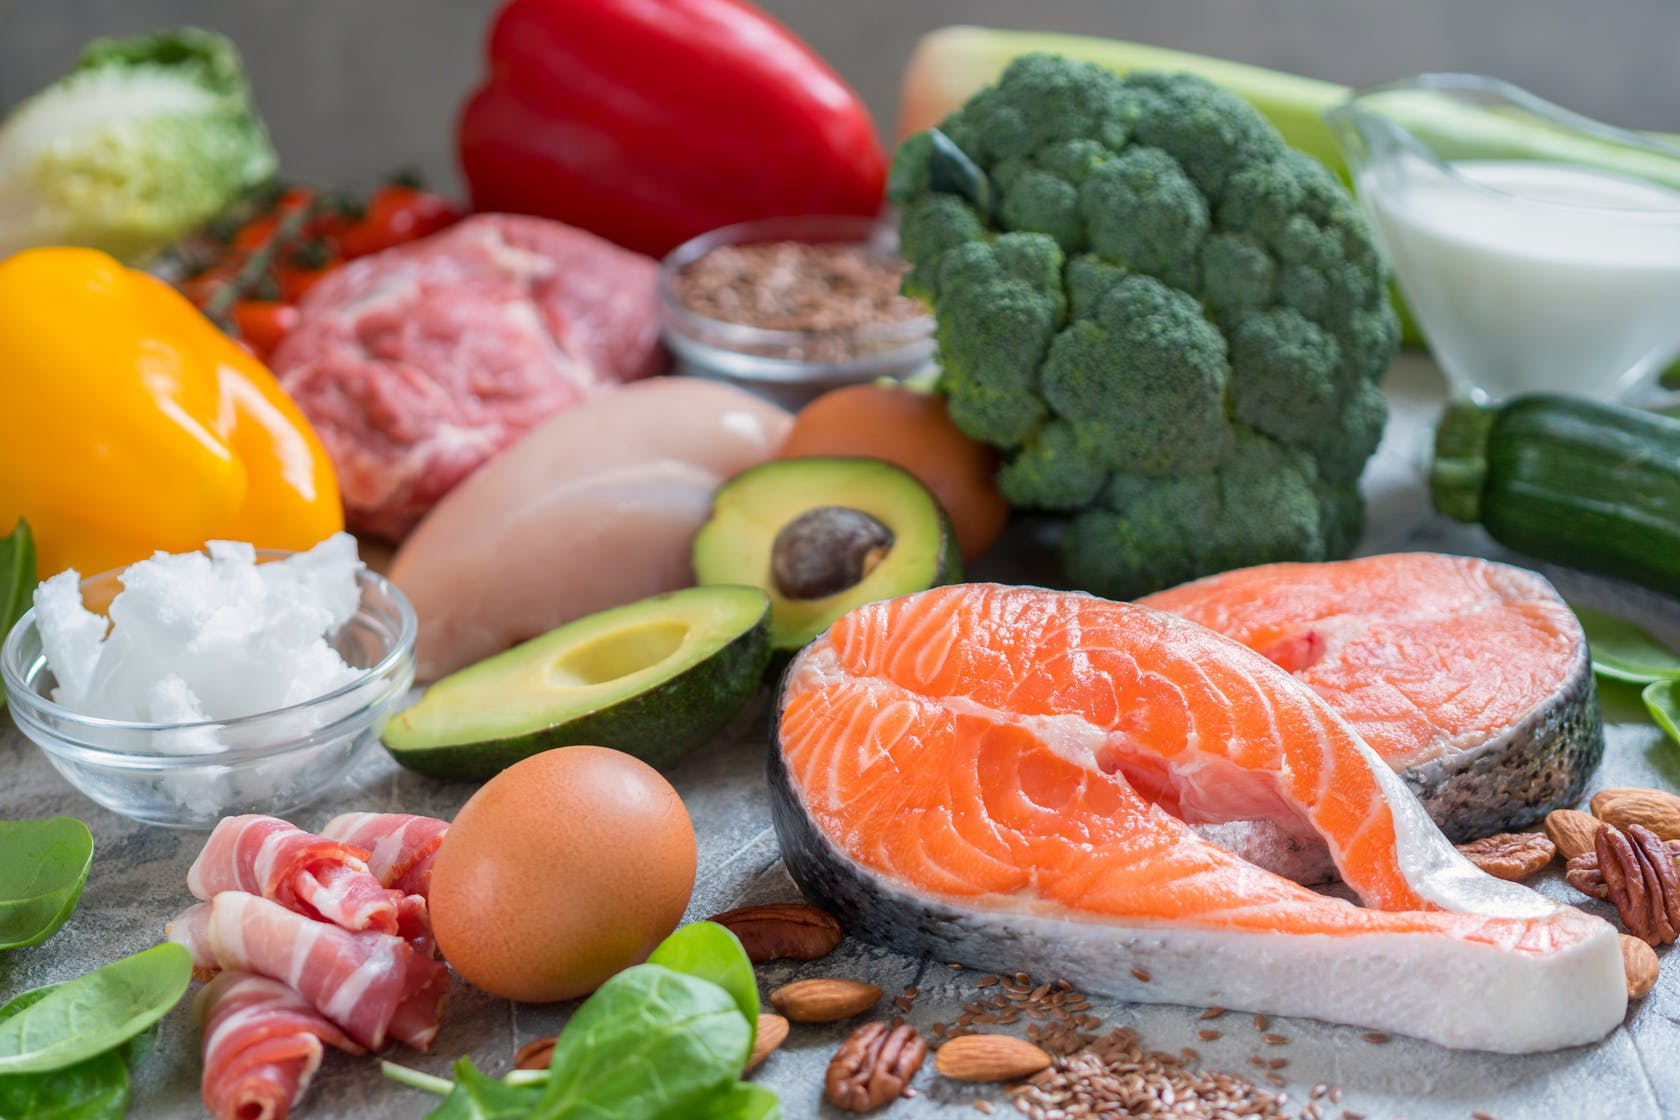 Keto Food Guide: What to Eat and What to Avoid